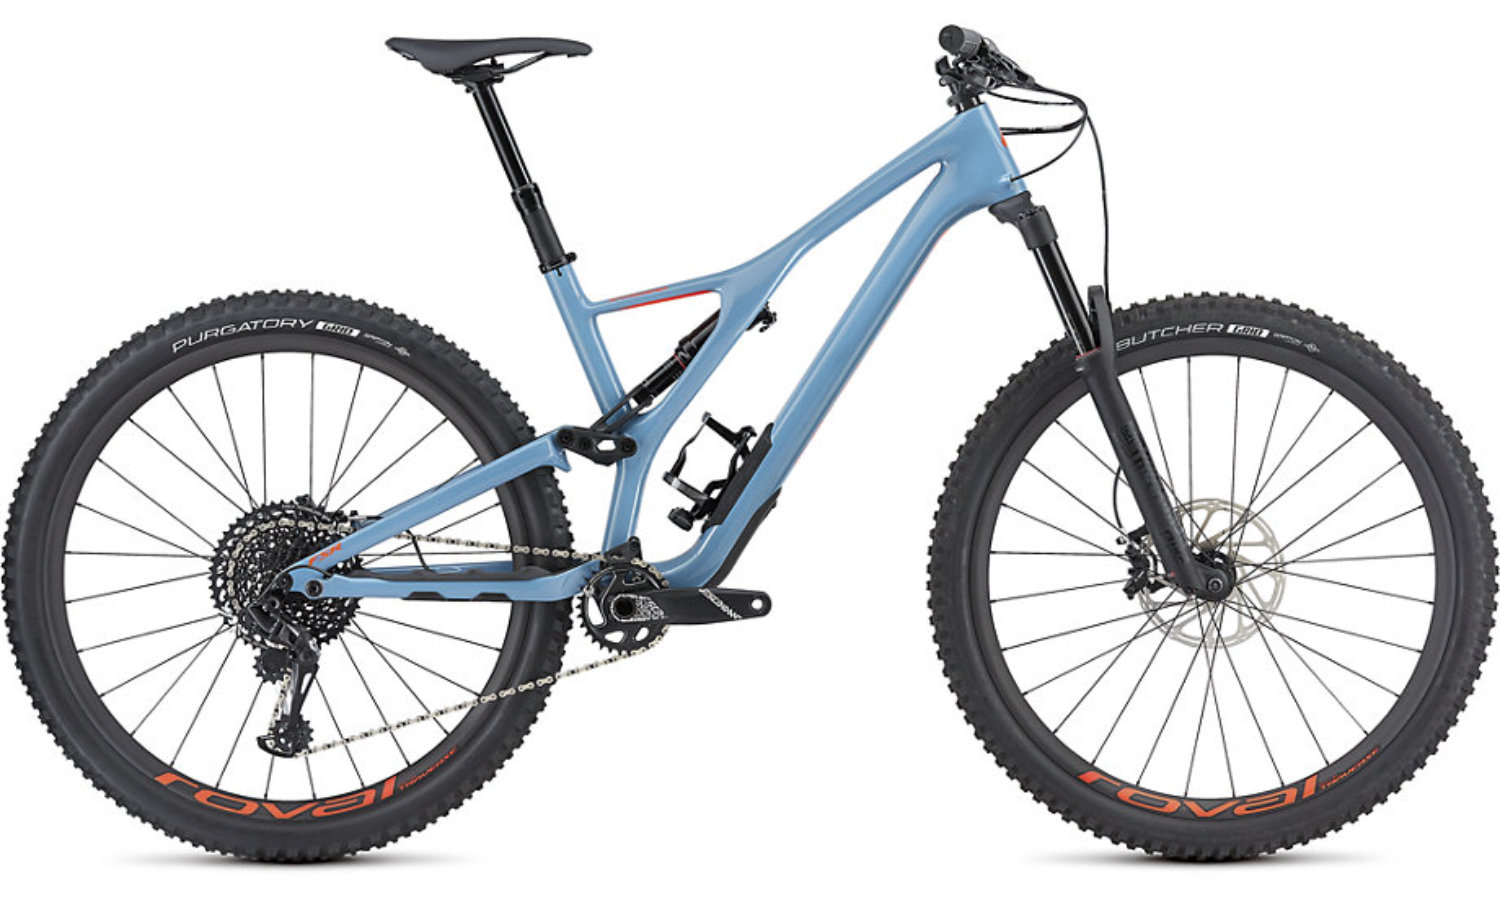 Specialized Stumpjumper Expert 29